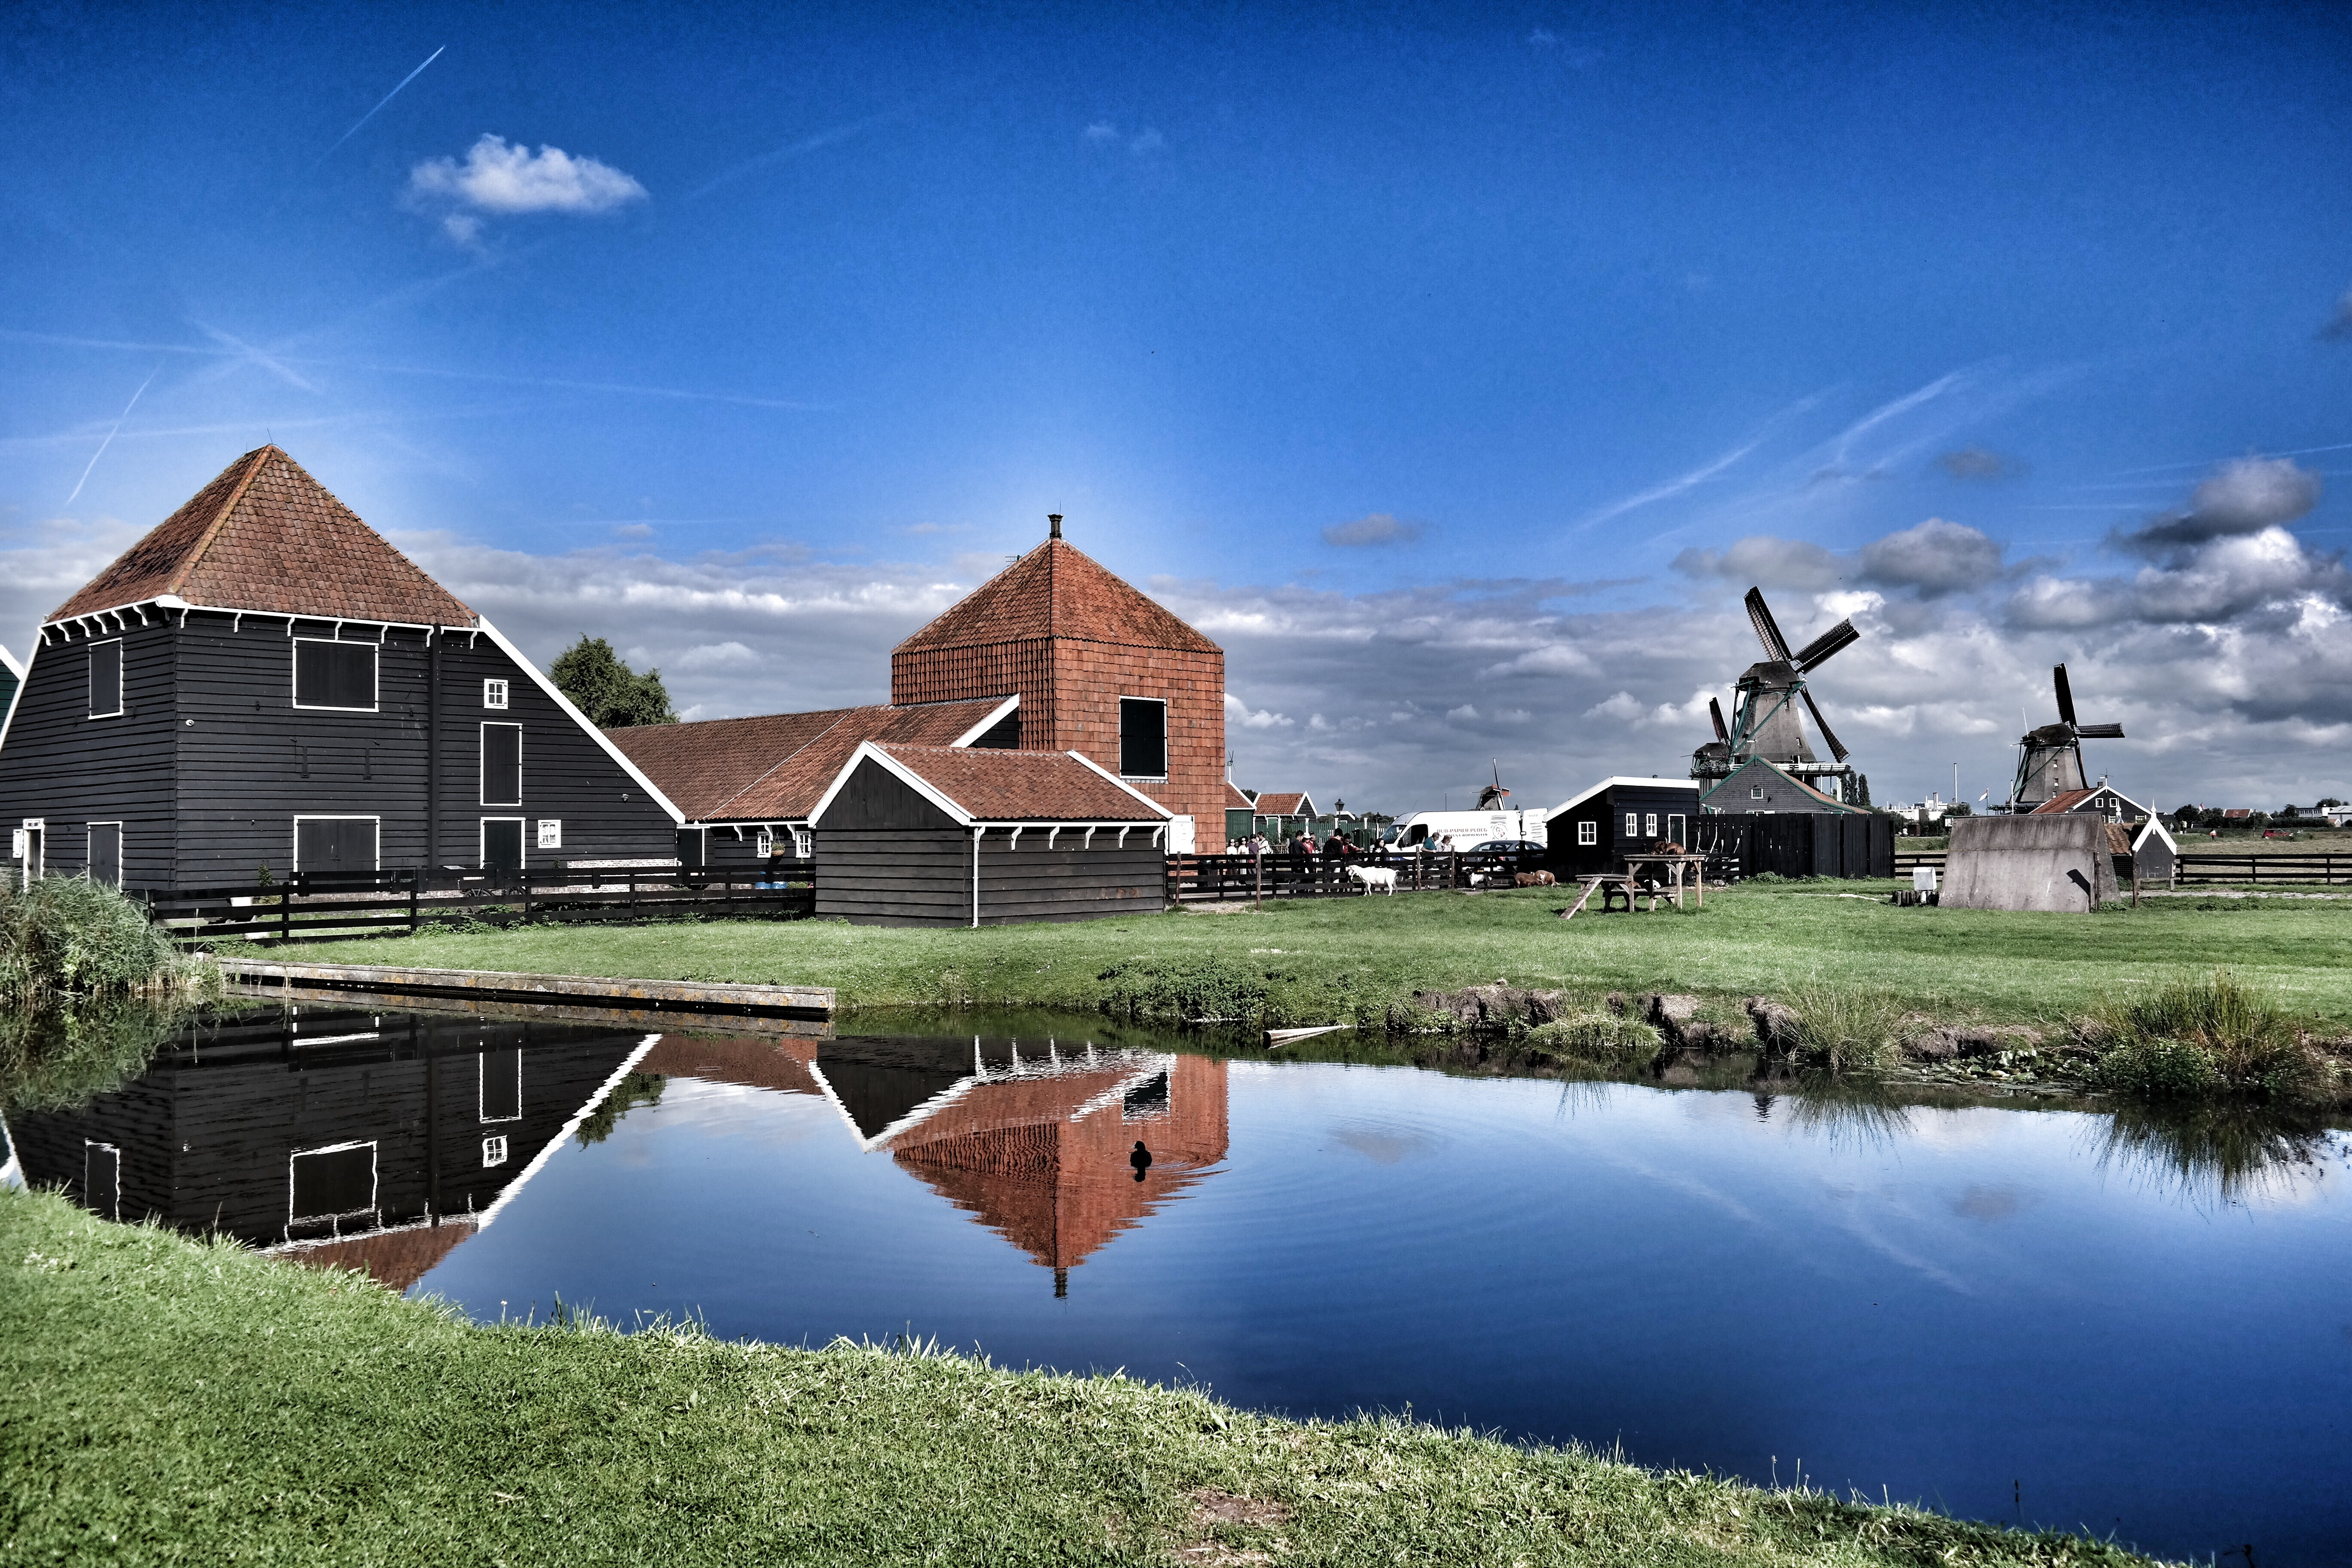 Brown Grey Barn House Near Windmill during Daytime, Outdoors, Reflection, Mill, Lawn, HQ Photo